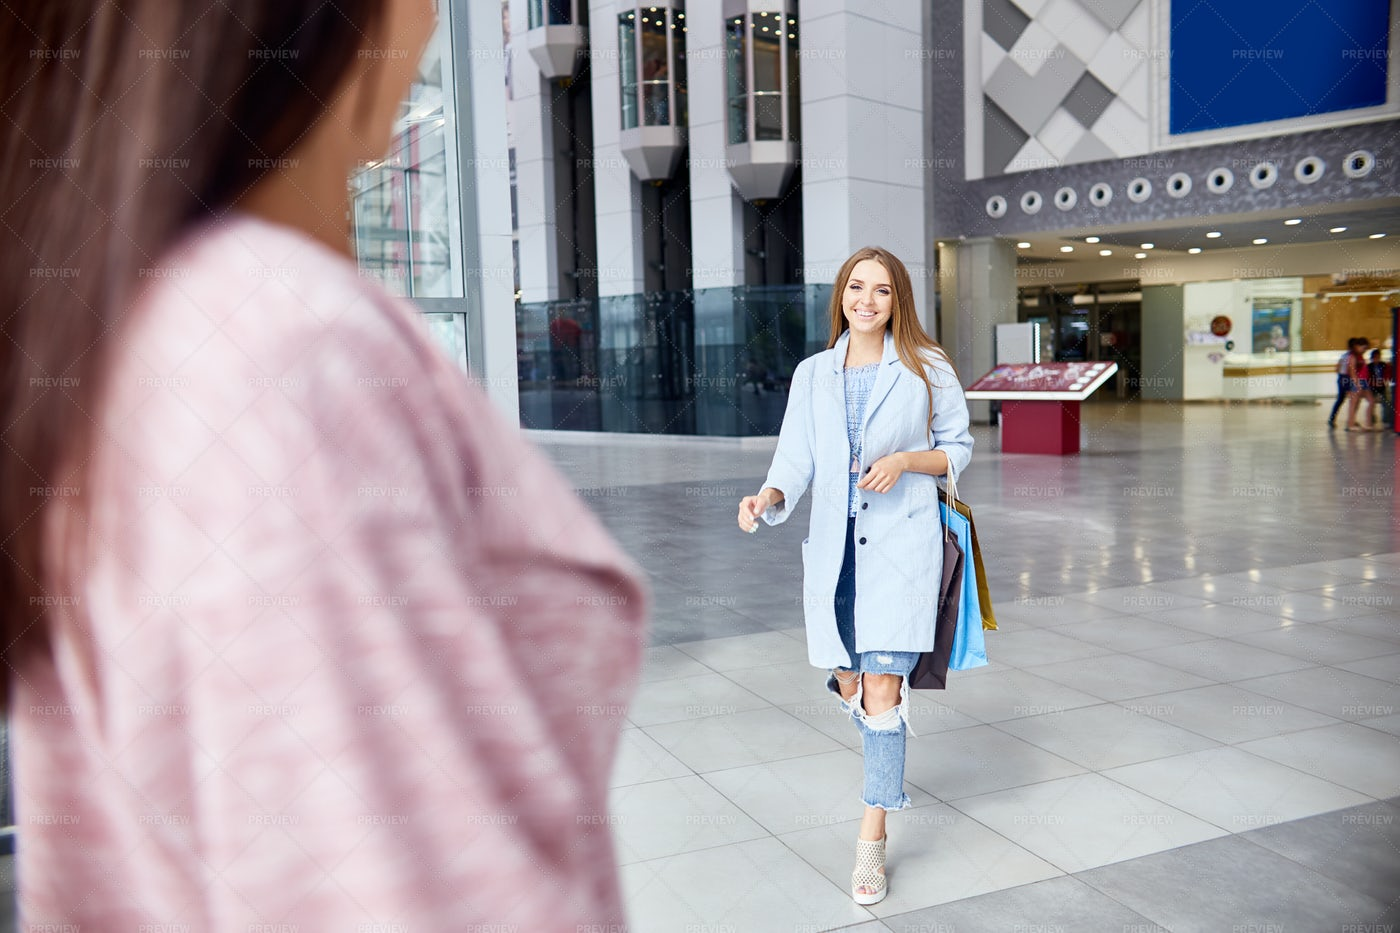 Two Girls Meeting In Shopping...: Stock Photos